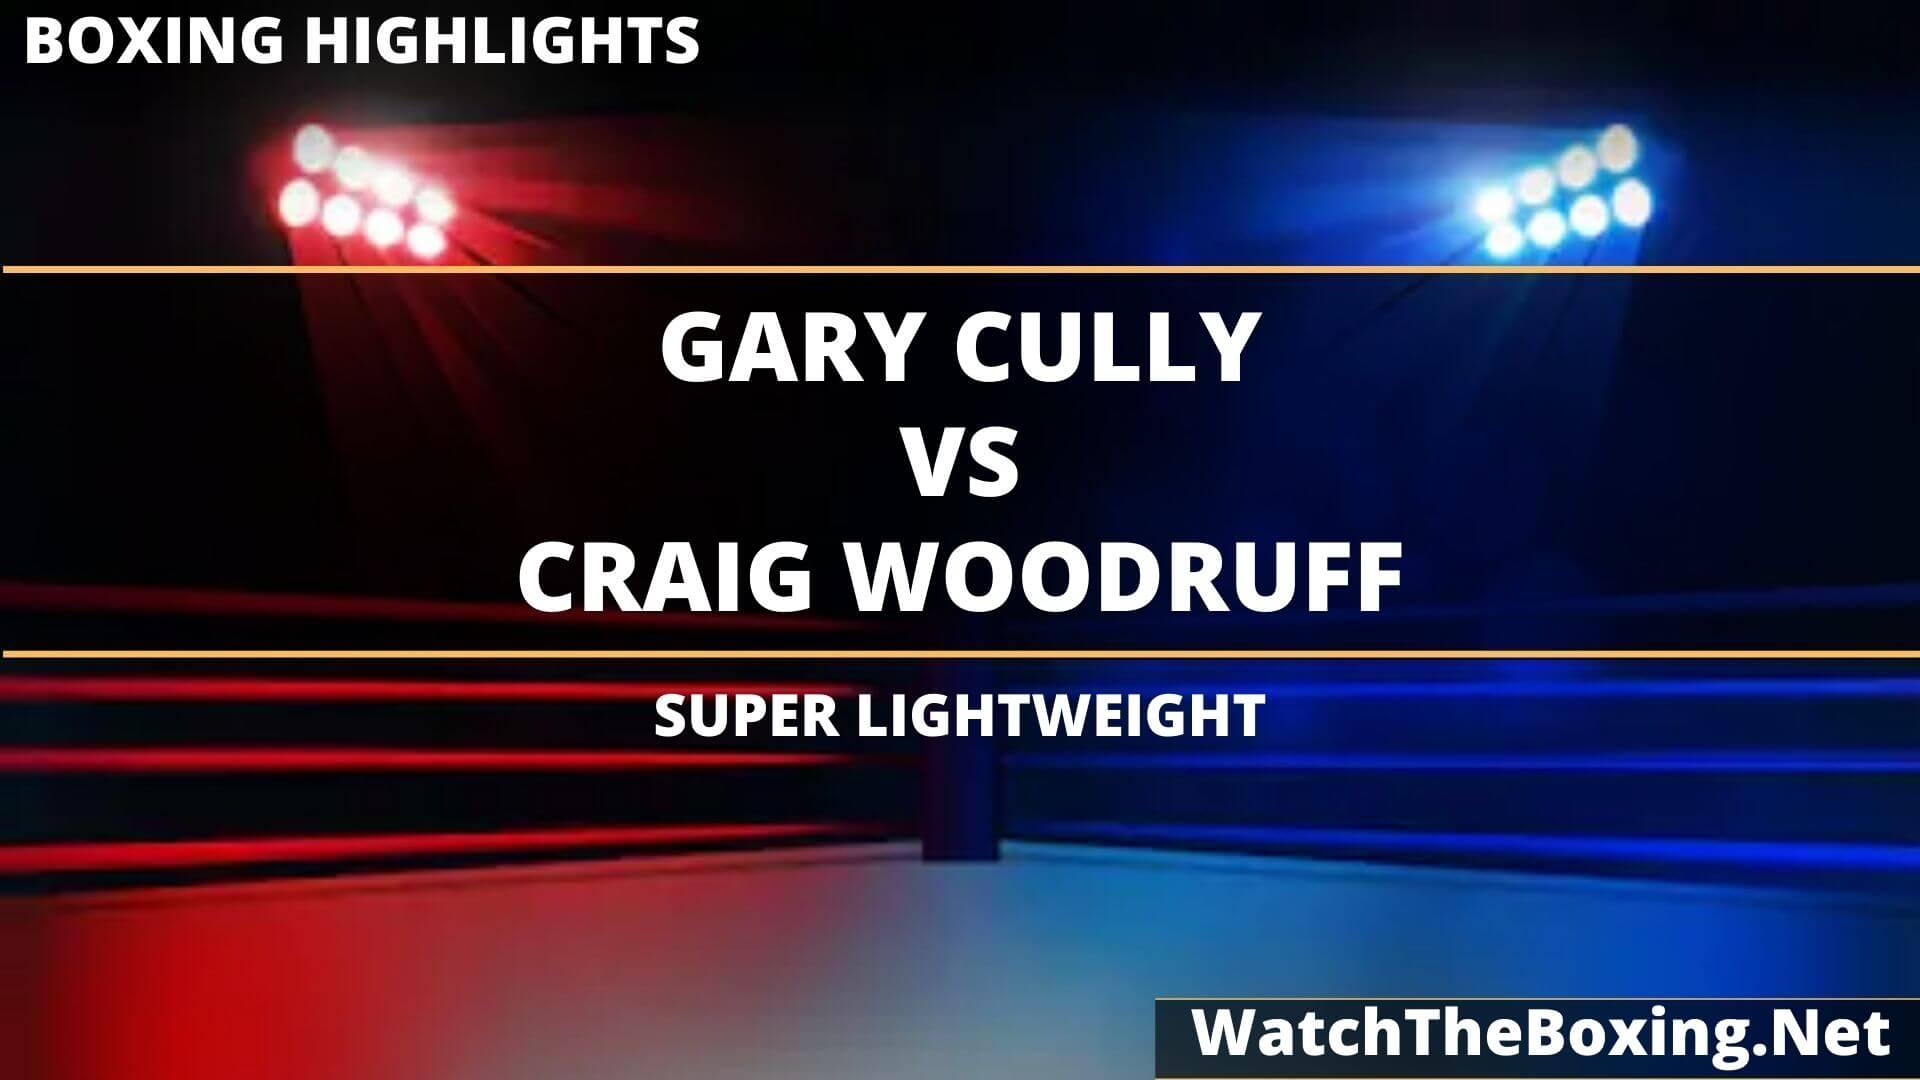 Gary Cully Vs Craig Woodruff Highlights 2020